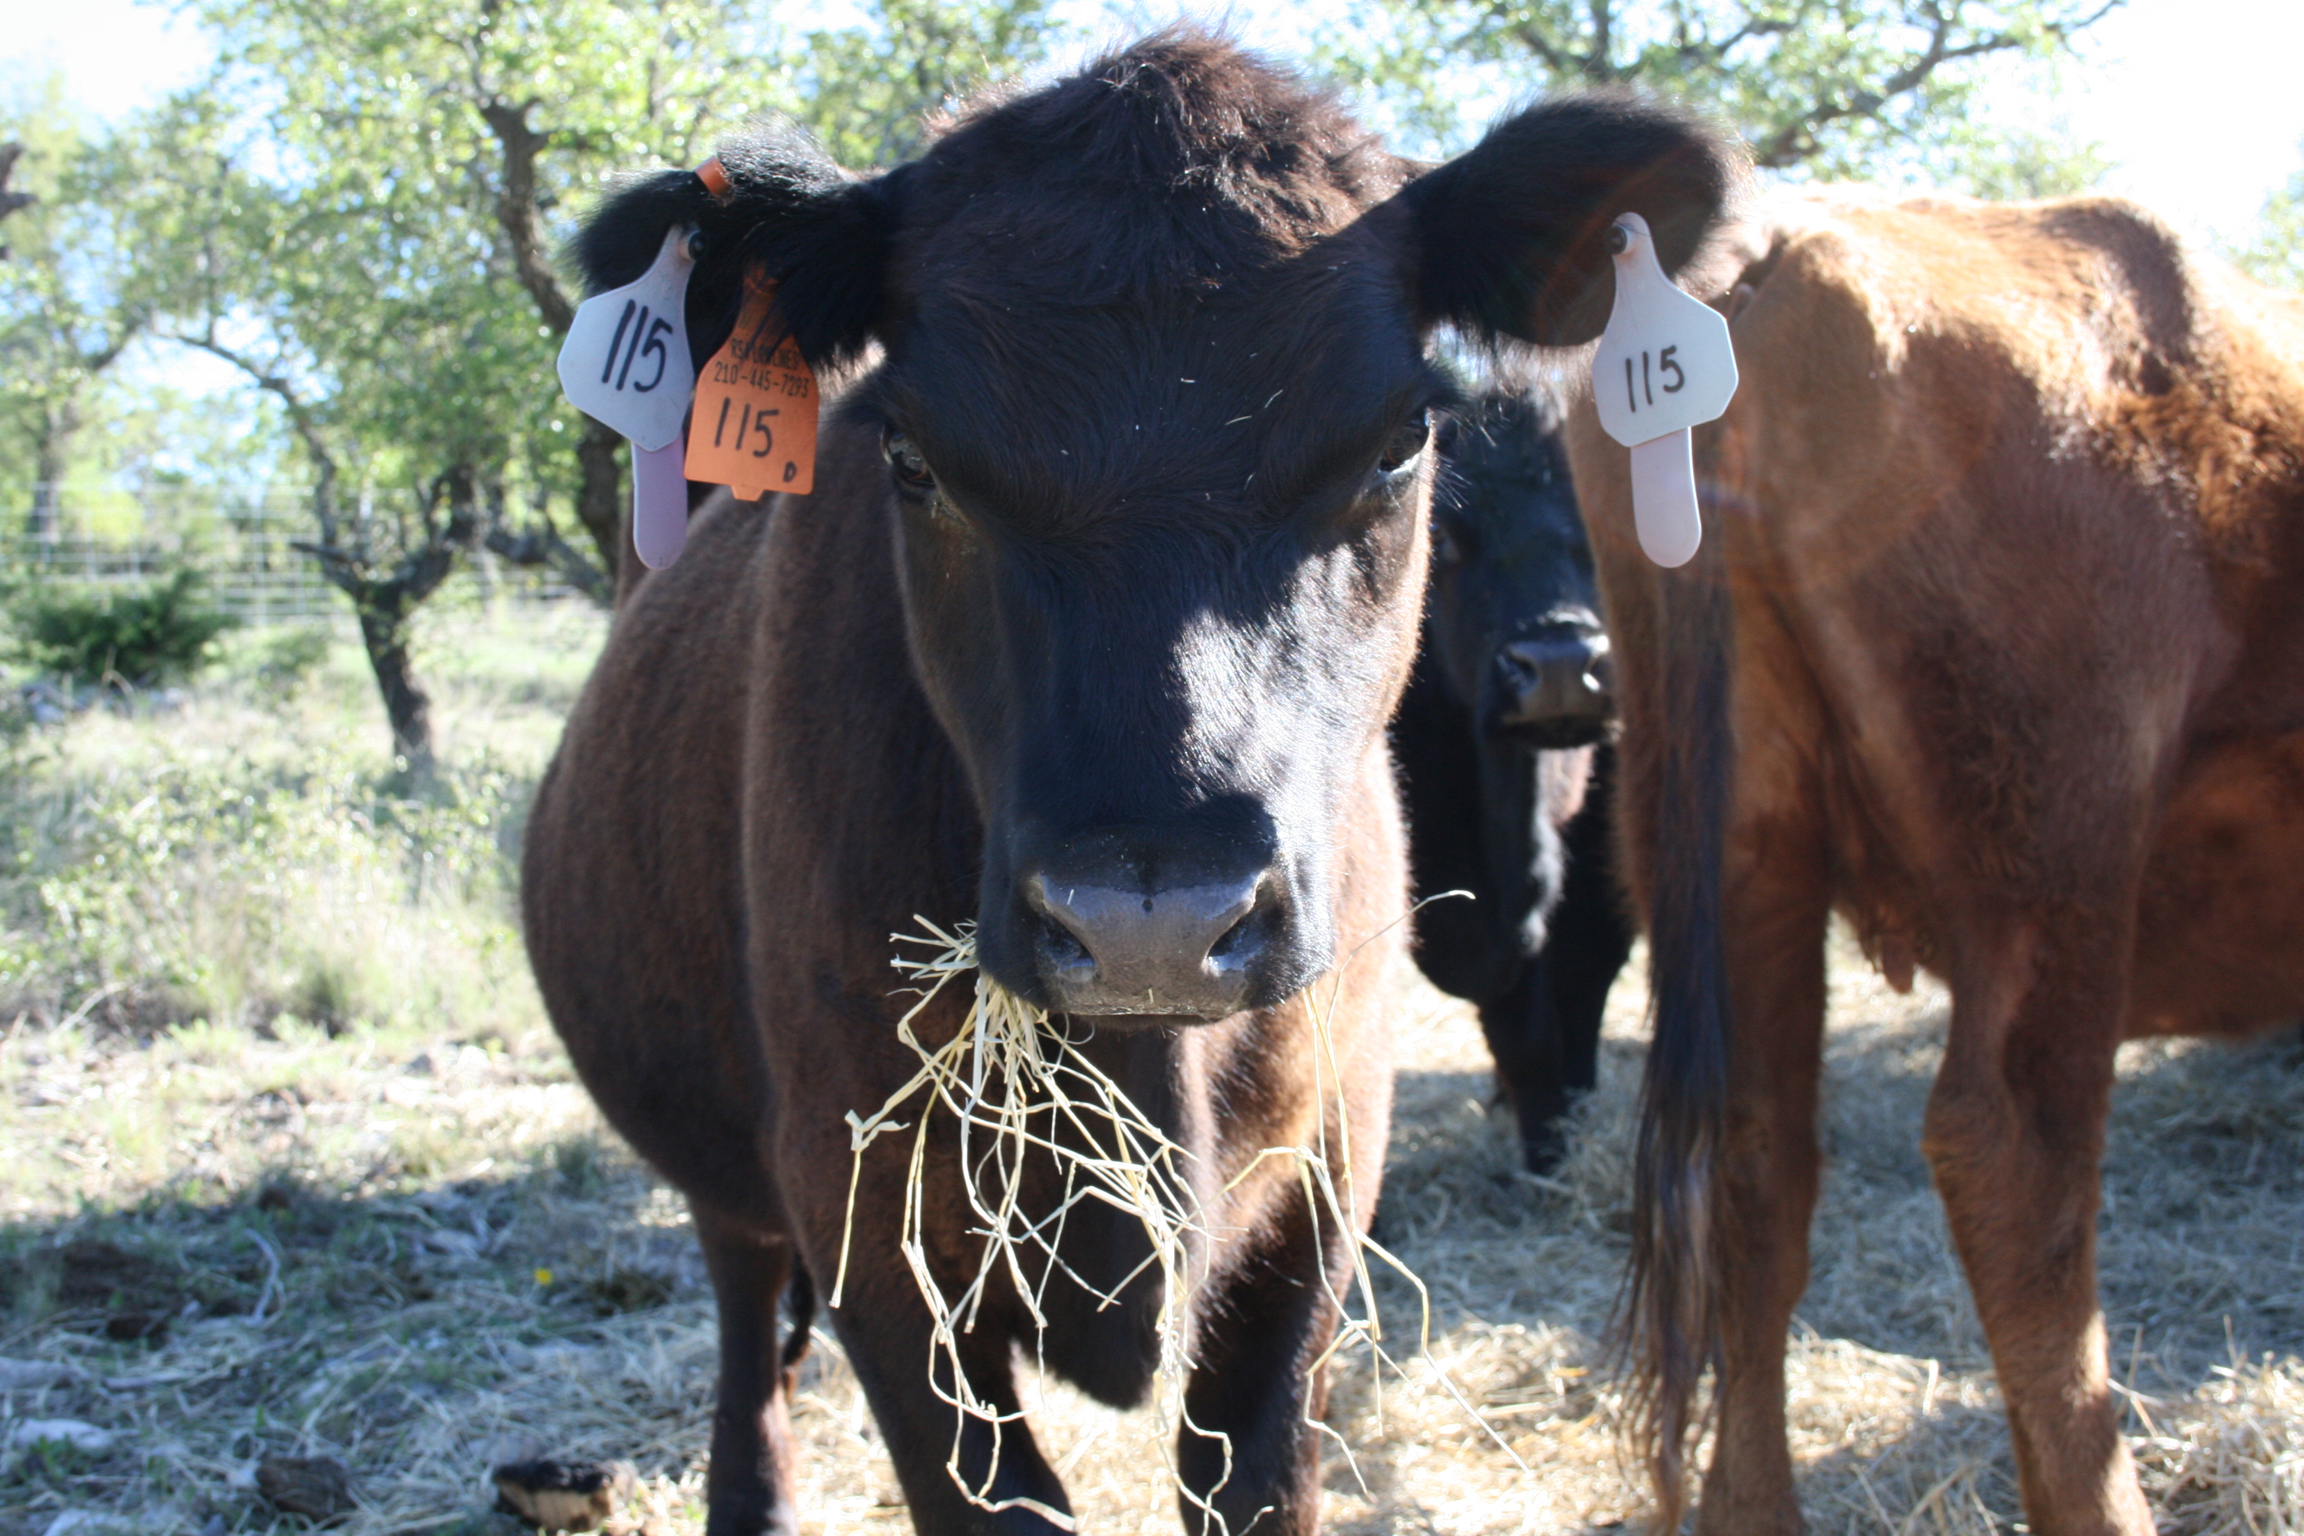 More Info - Find out about our ranch, mission, our grazing methods, and the results of our adoption of American Aberdeen cattle.